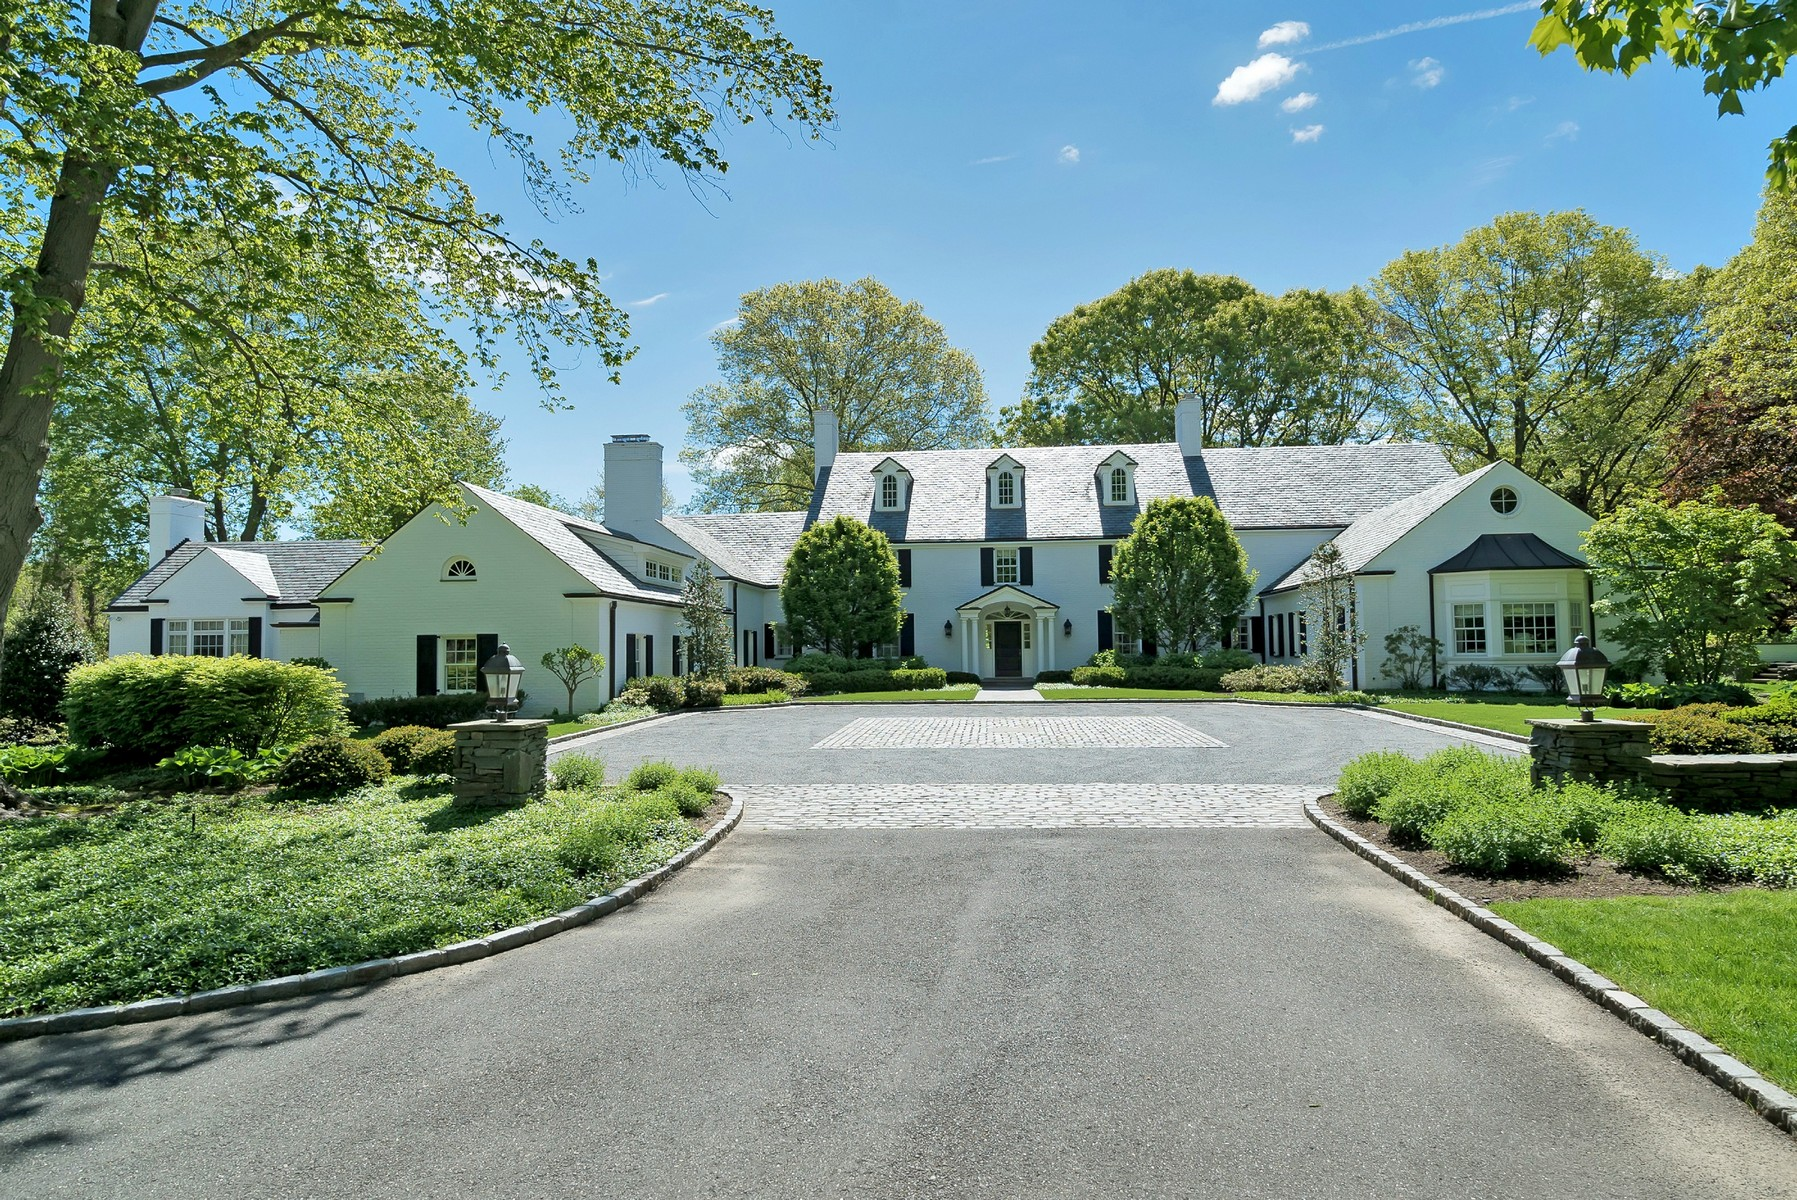 Single Family Home for Sale at Estate 530 Chicken Valley Rd Matinecock, New York, 11560 United States